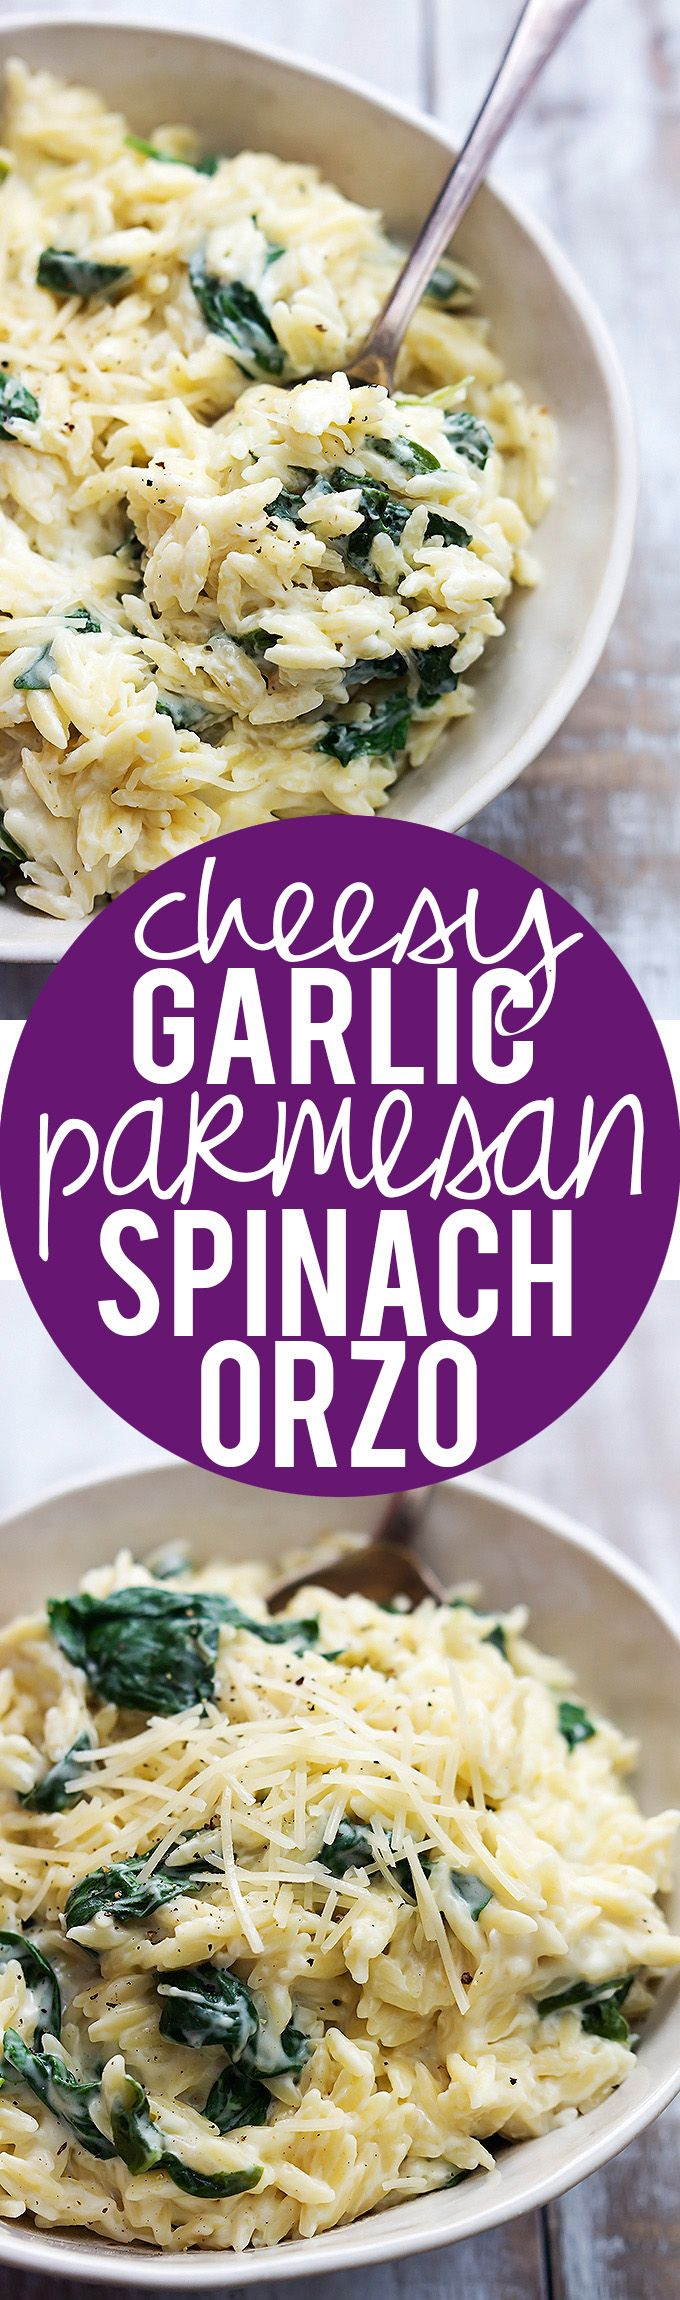 Cheesy Garlic Parmesan Orzo - Would be nice to have a little more texture, perhaps add onions with garlic or even shredded chicken